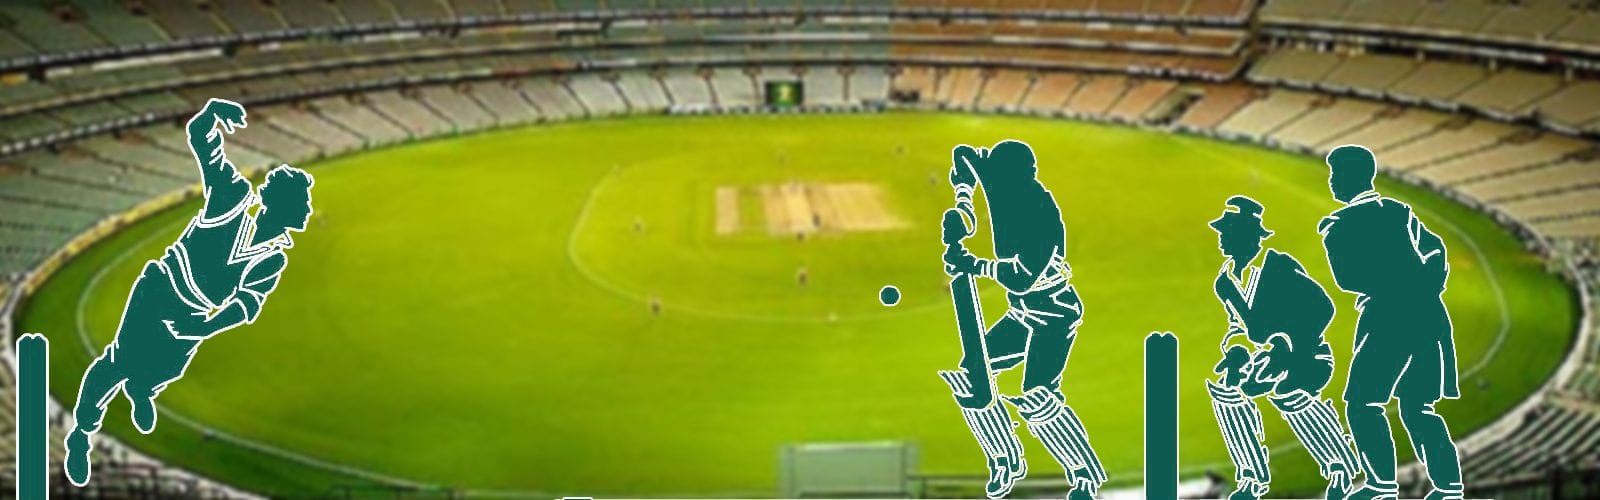 Online cricket Prediction tips